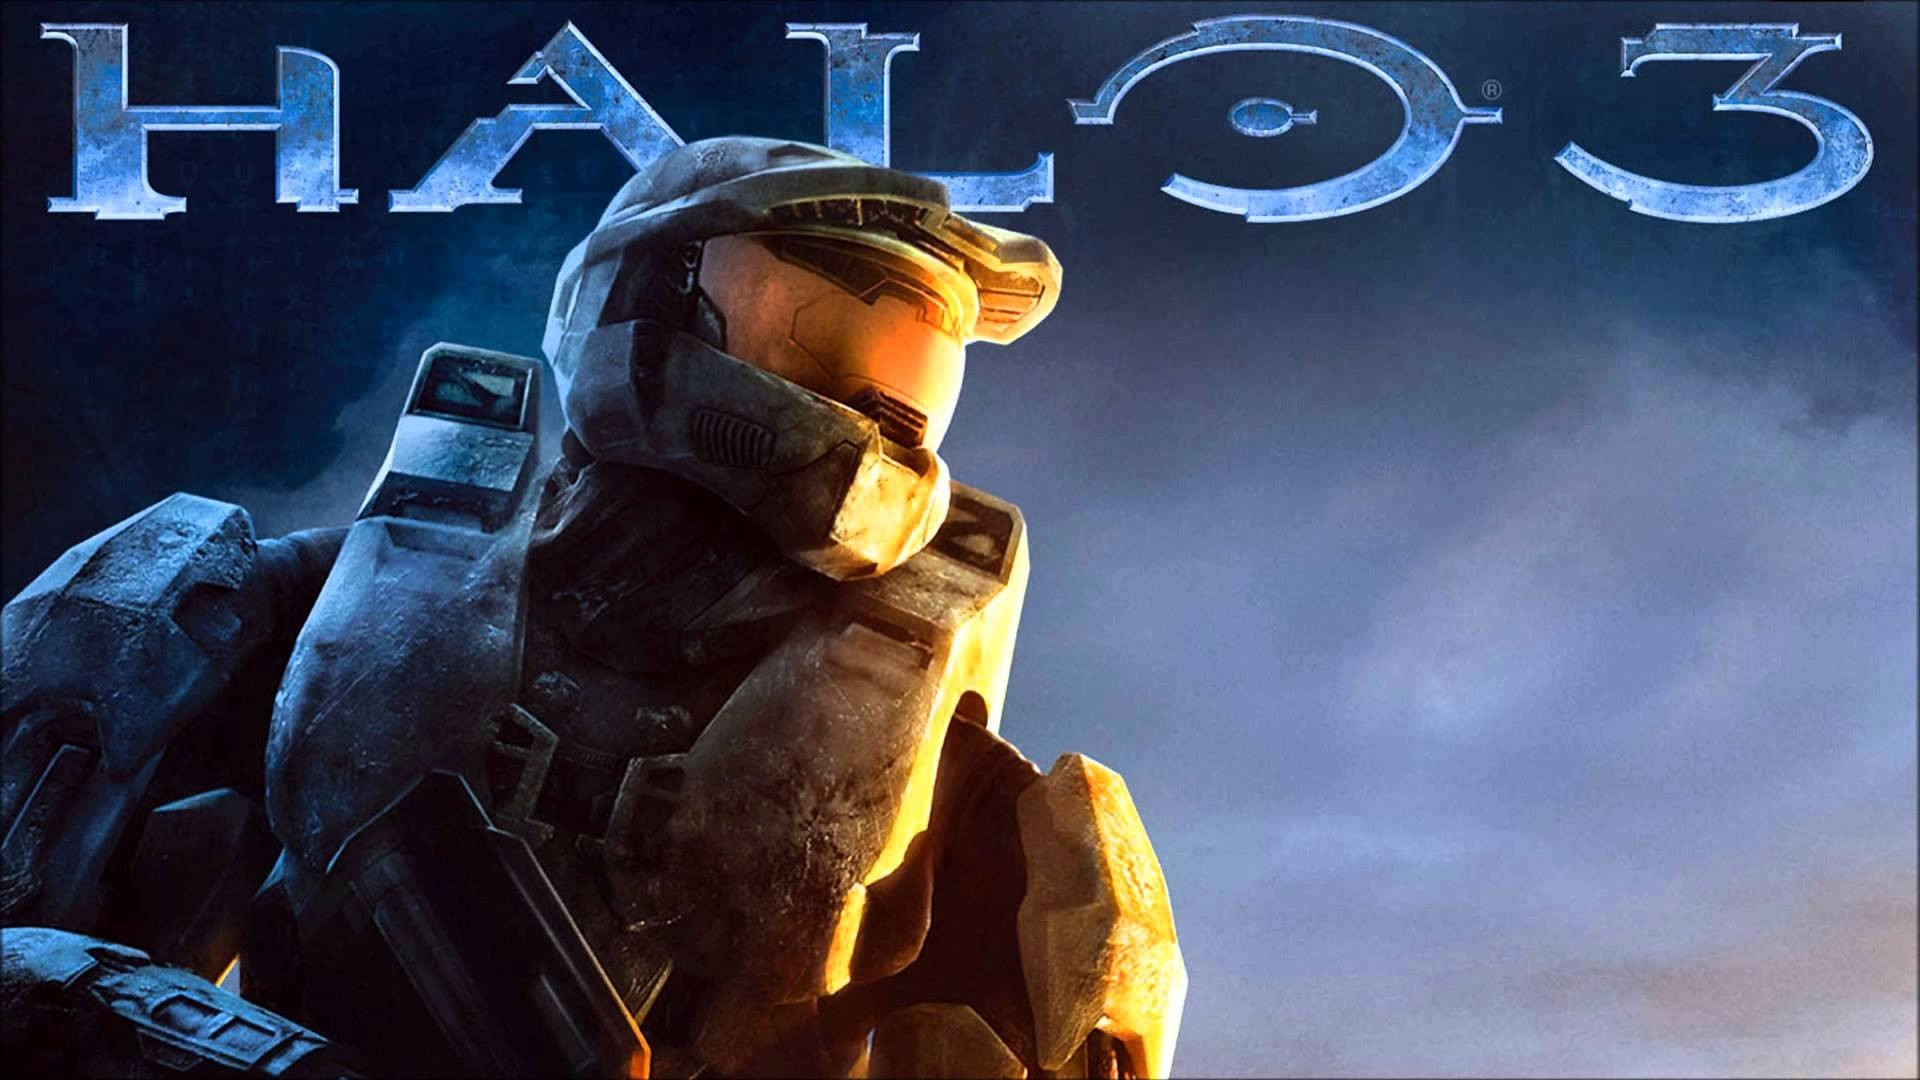 Halo Arbiter Wallpapers Hd Wallpaper Collections 4kwallpaper Wiki